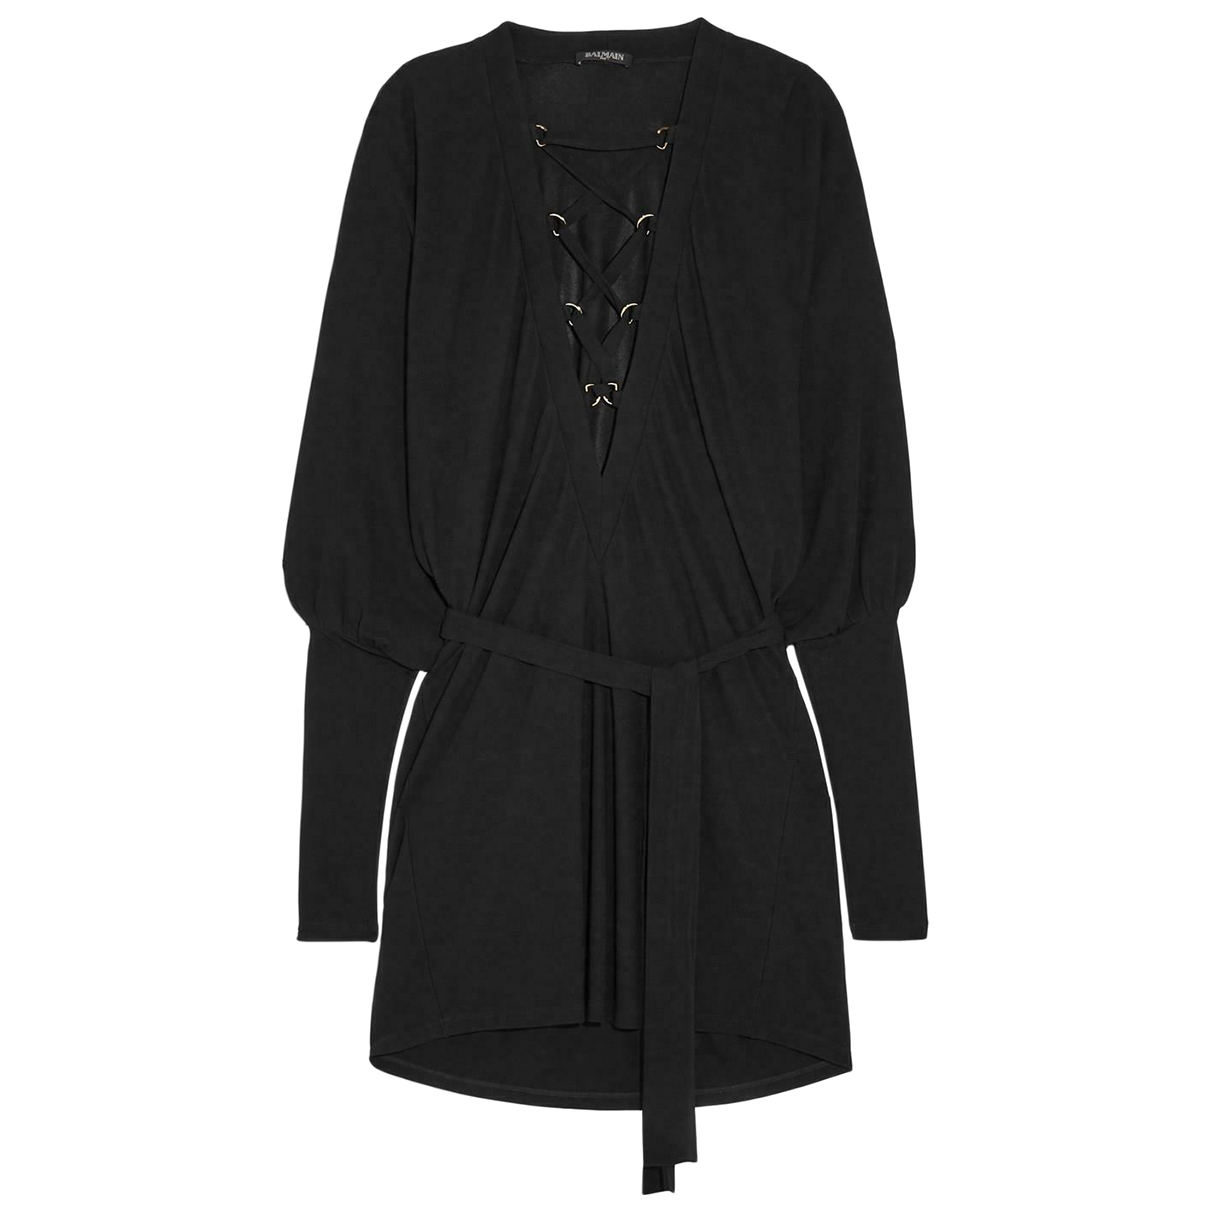 Balmain \N Black dress for Women 36 FR